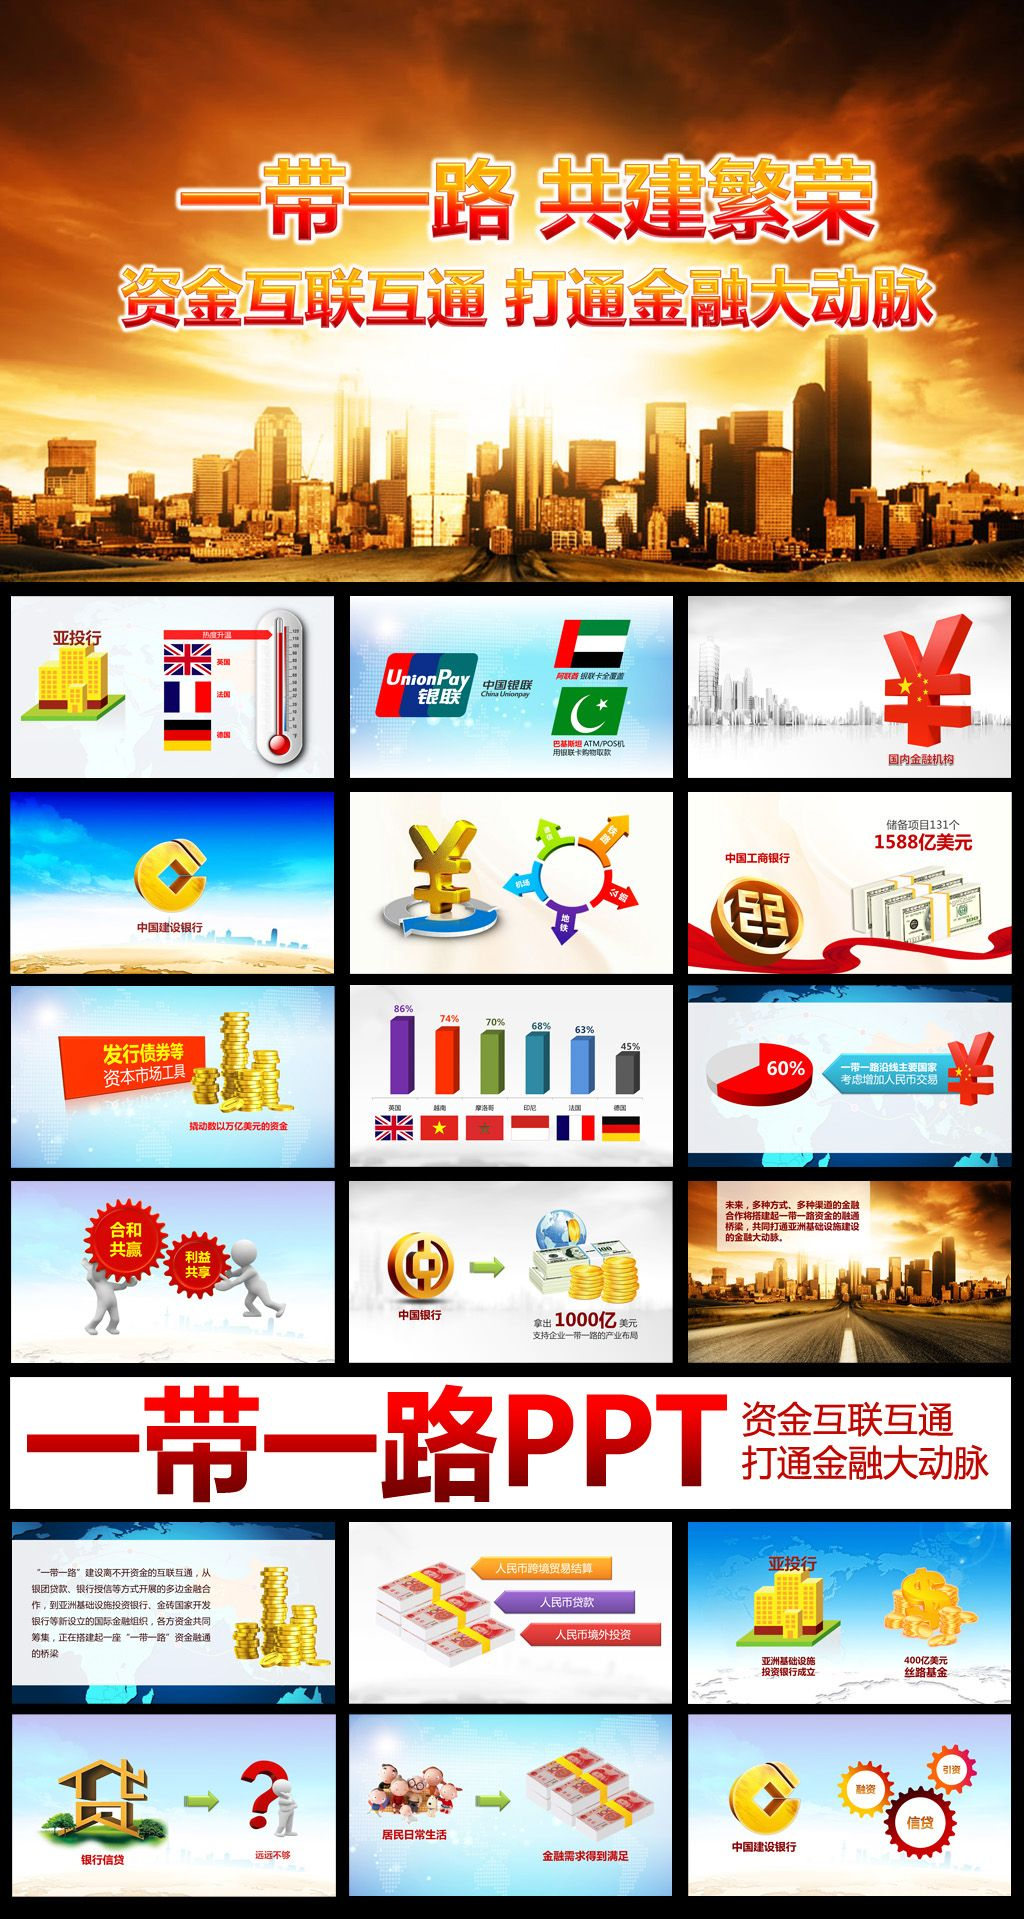 One belt and one road ppt templates introduce asian infrastructure one belt and one road ppt templates introduce asian infrastructure investment bank downoad toneelgroepblik Gallery